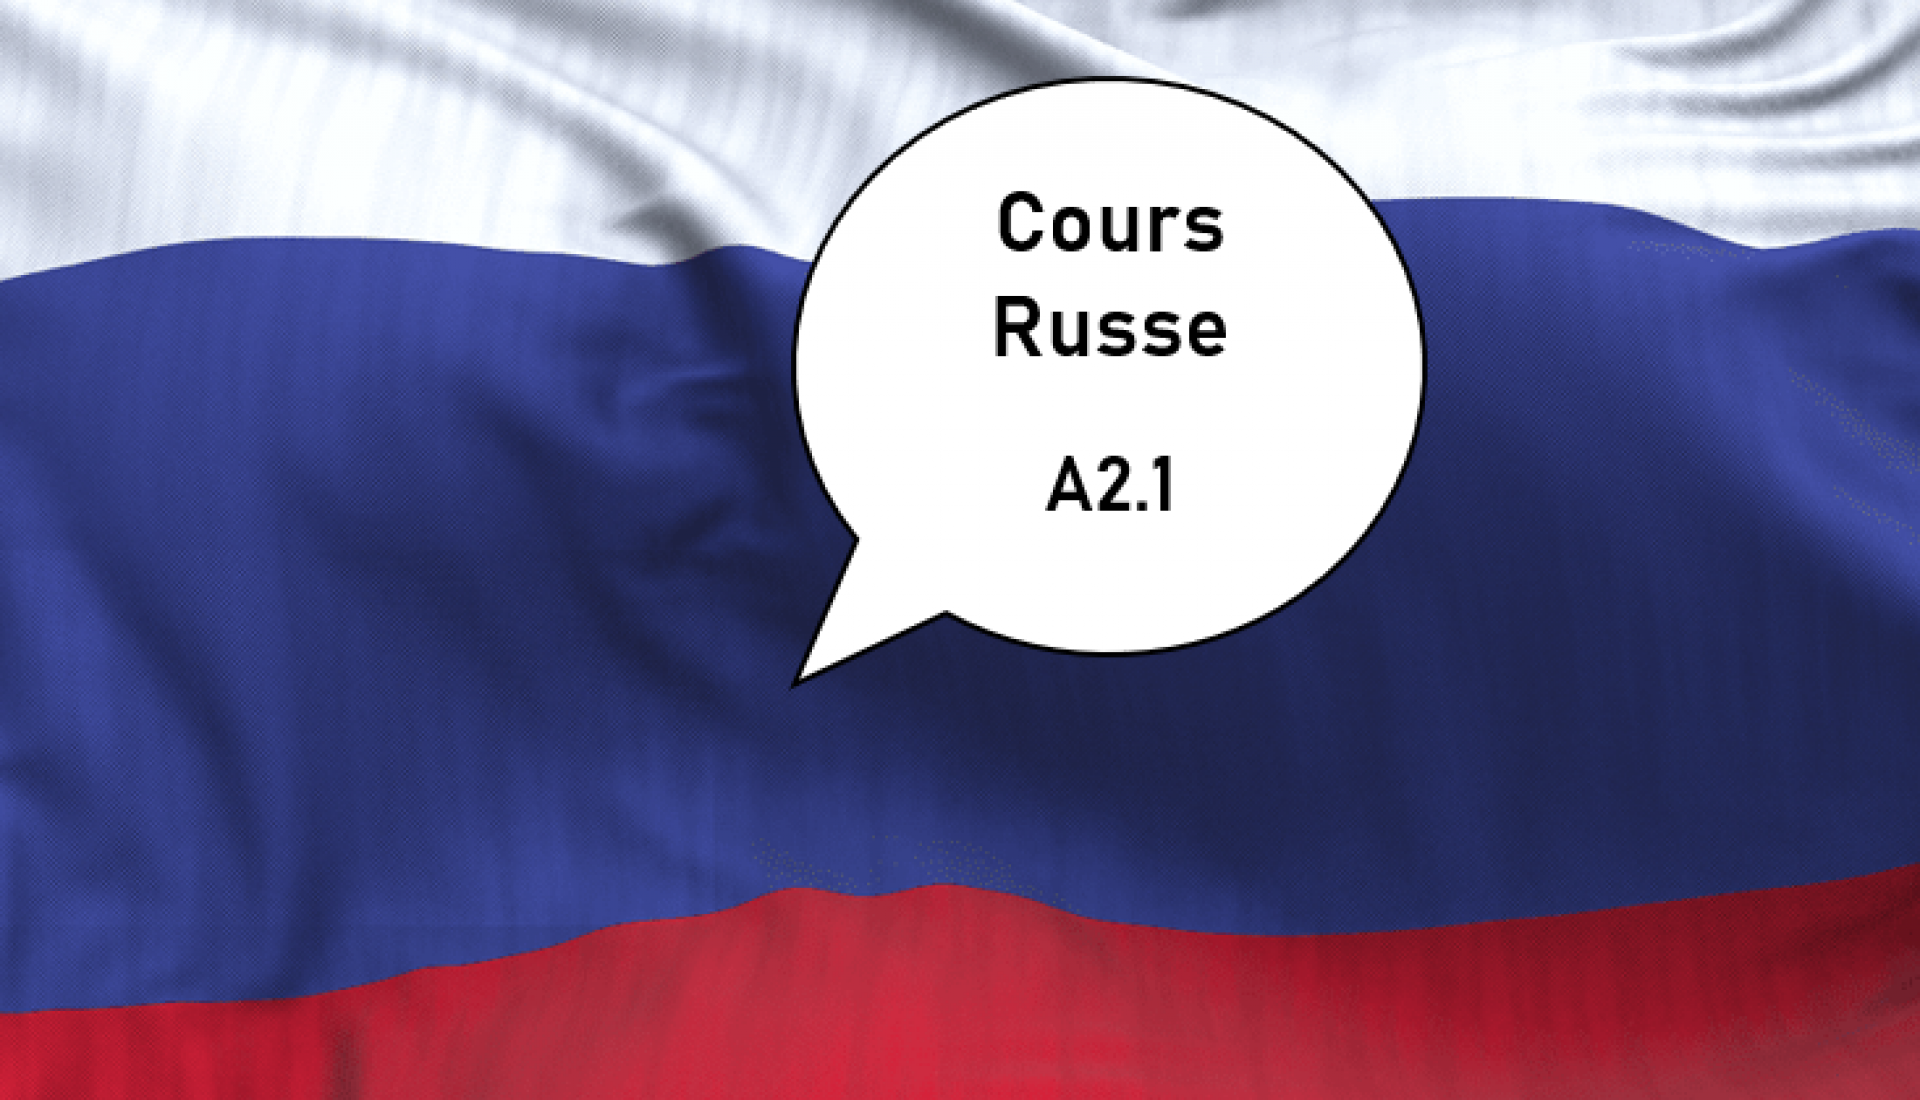 Russe A2.1